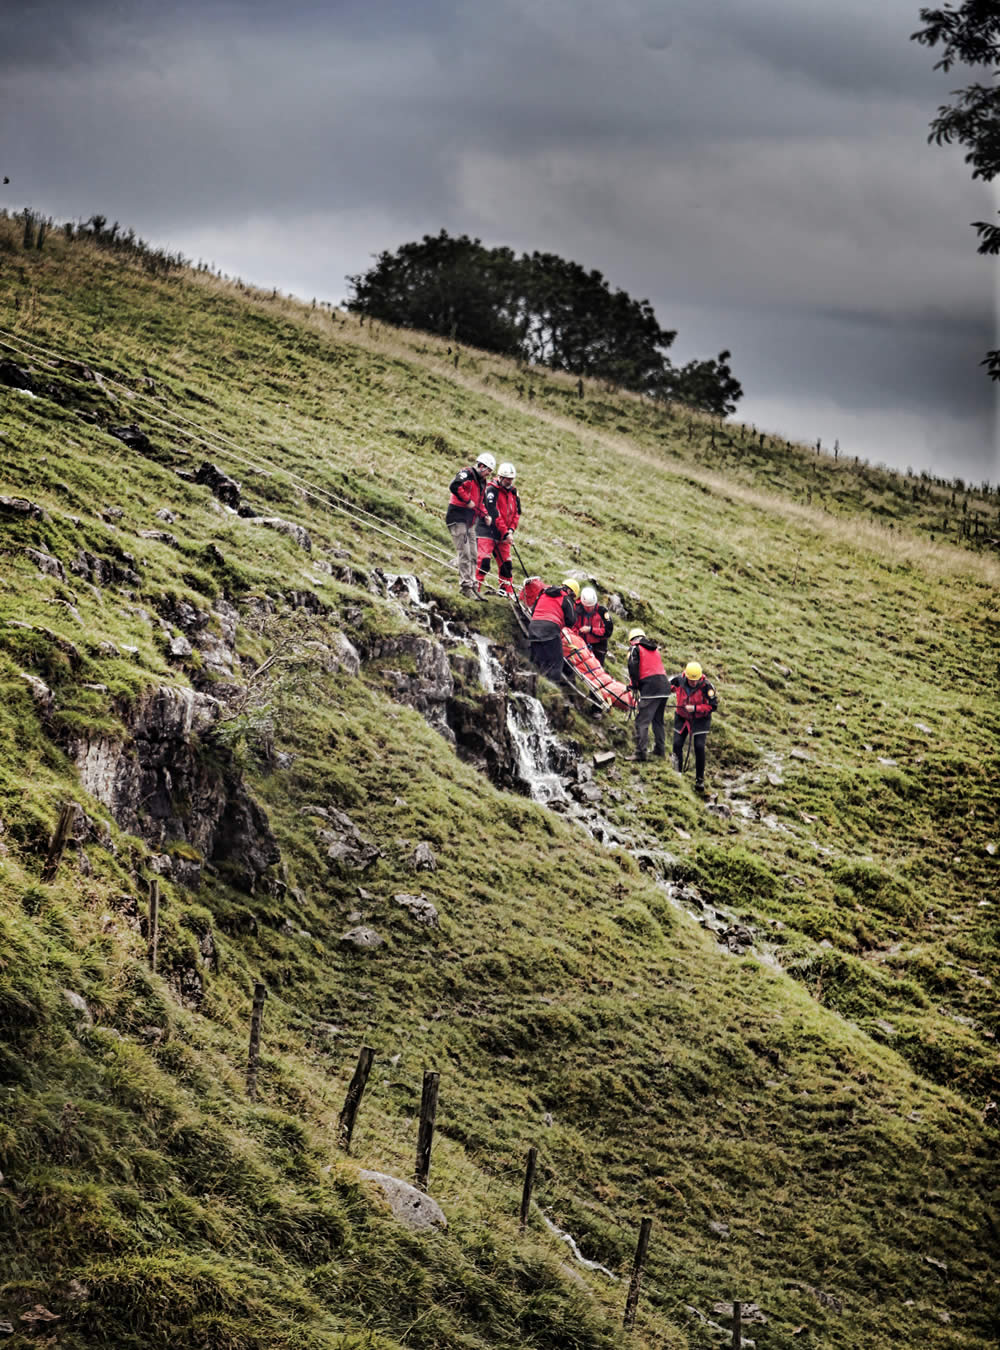 Fell rescue in Yorkshire